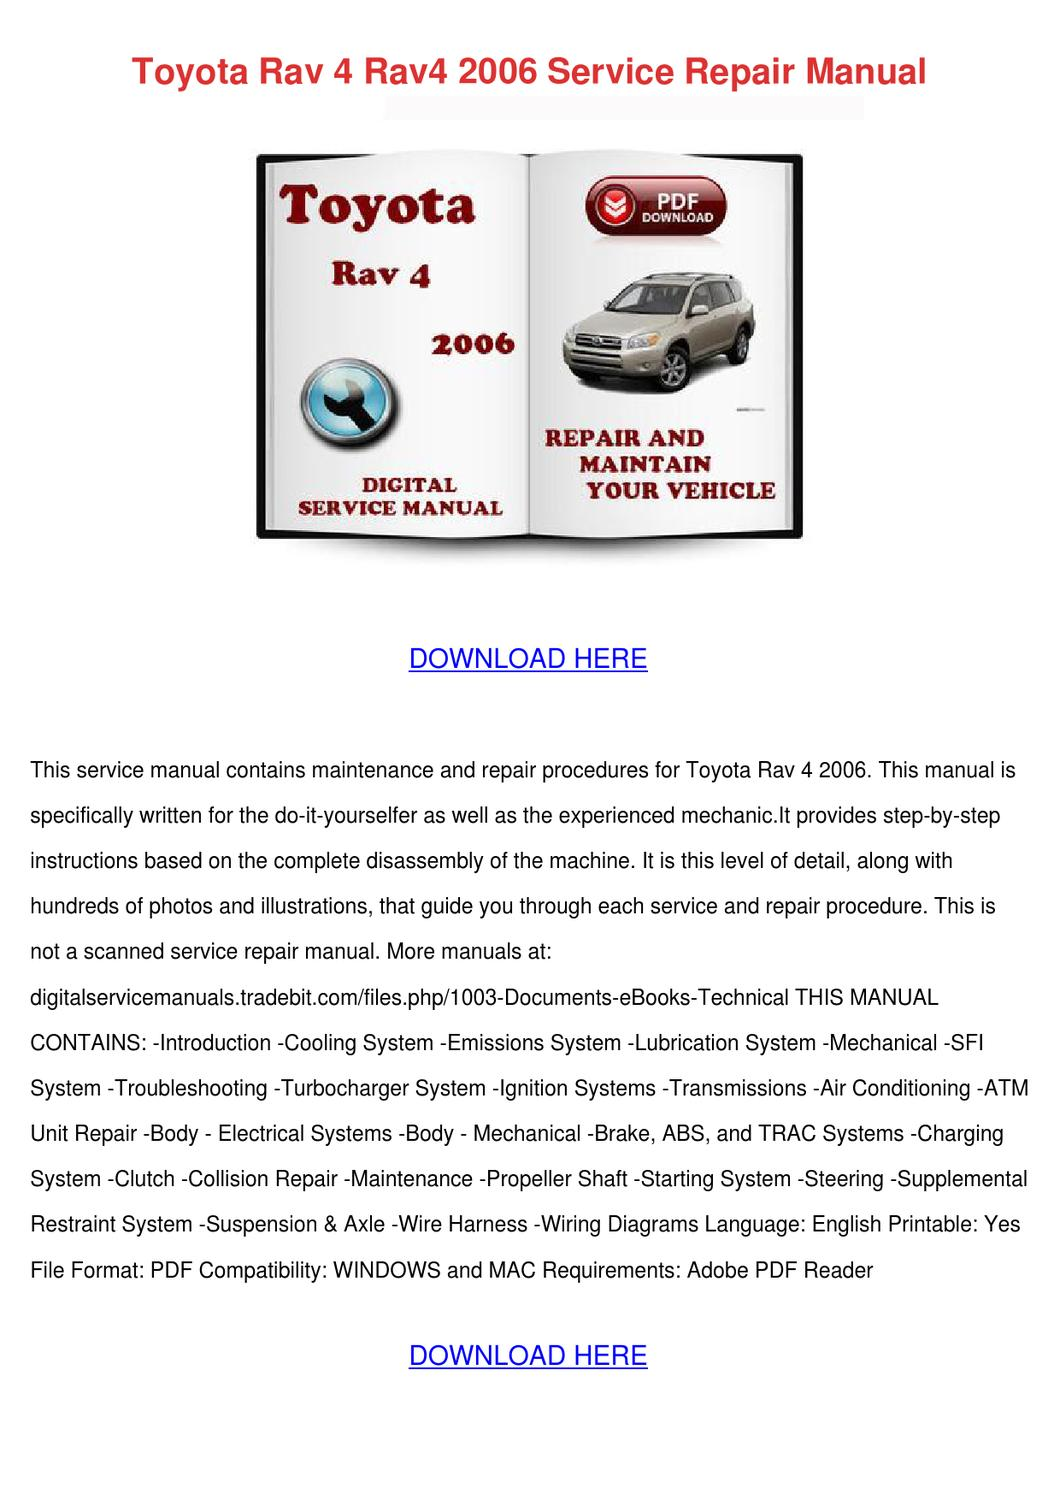 toyota rav4 repair manual download